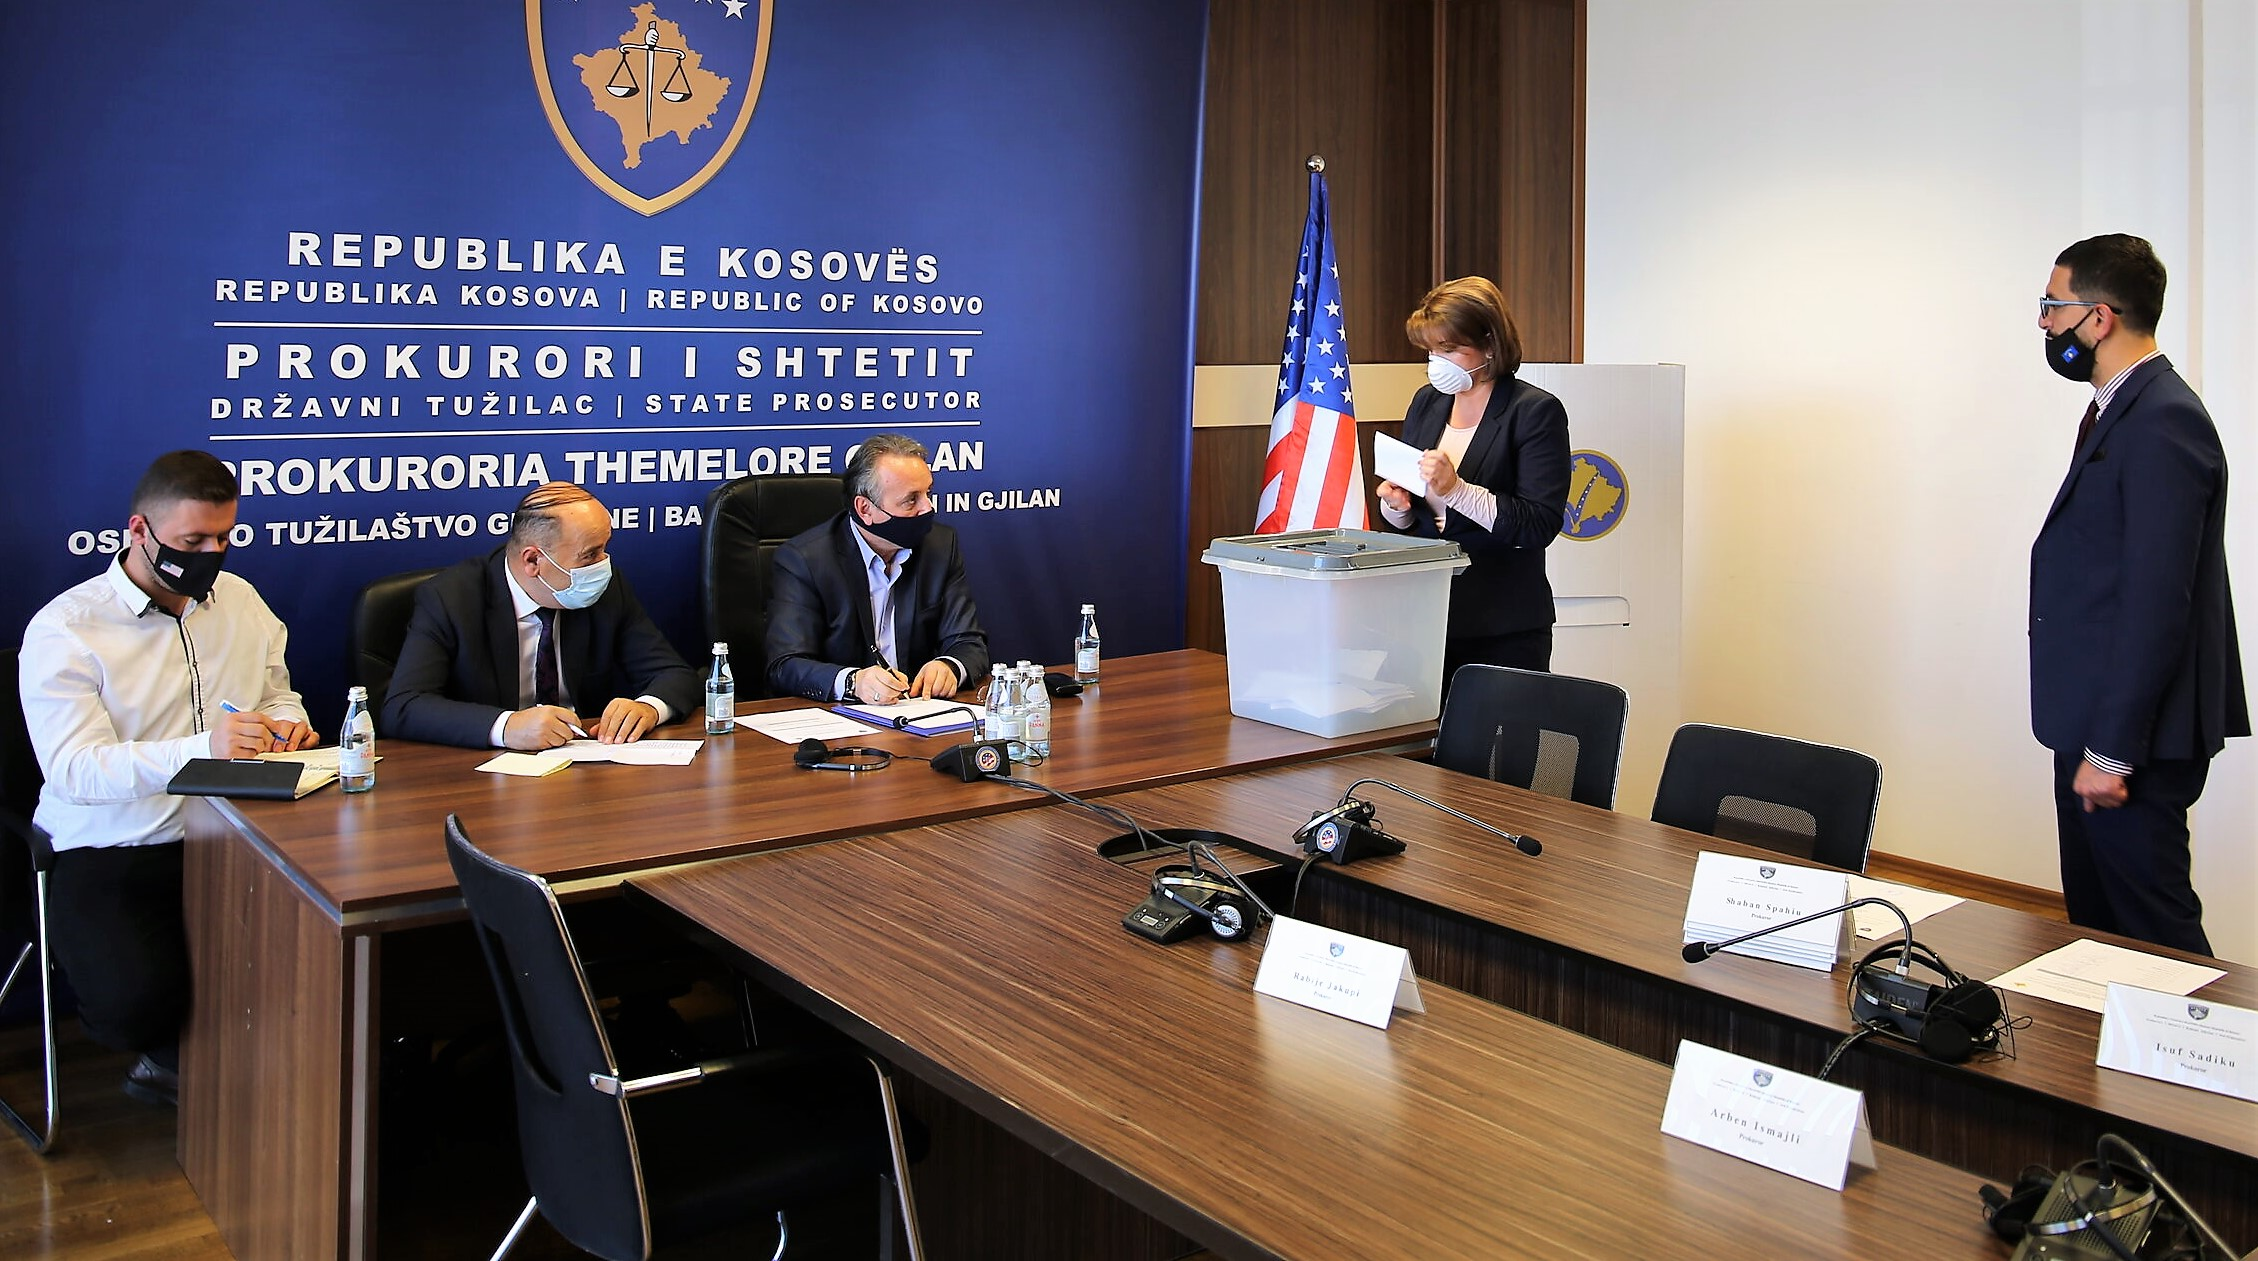 Voting process for the election of KPC members from the ranks of the Basic Prosecution of Prishtina, Ferizaj and Gjilan takes place